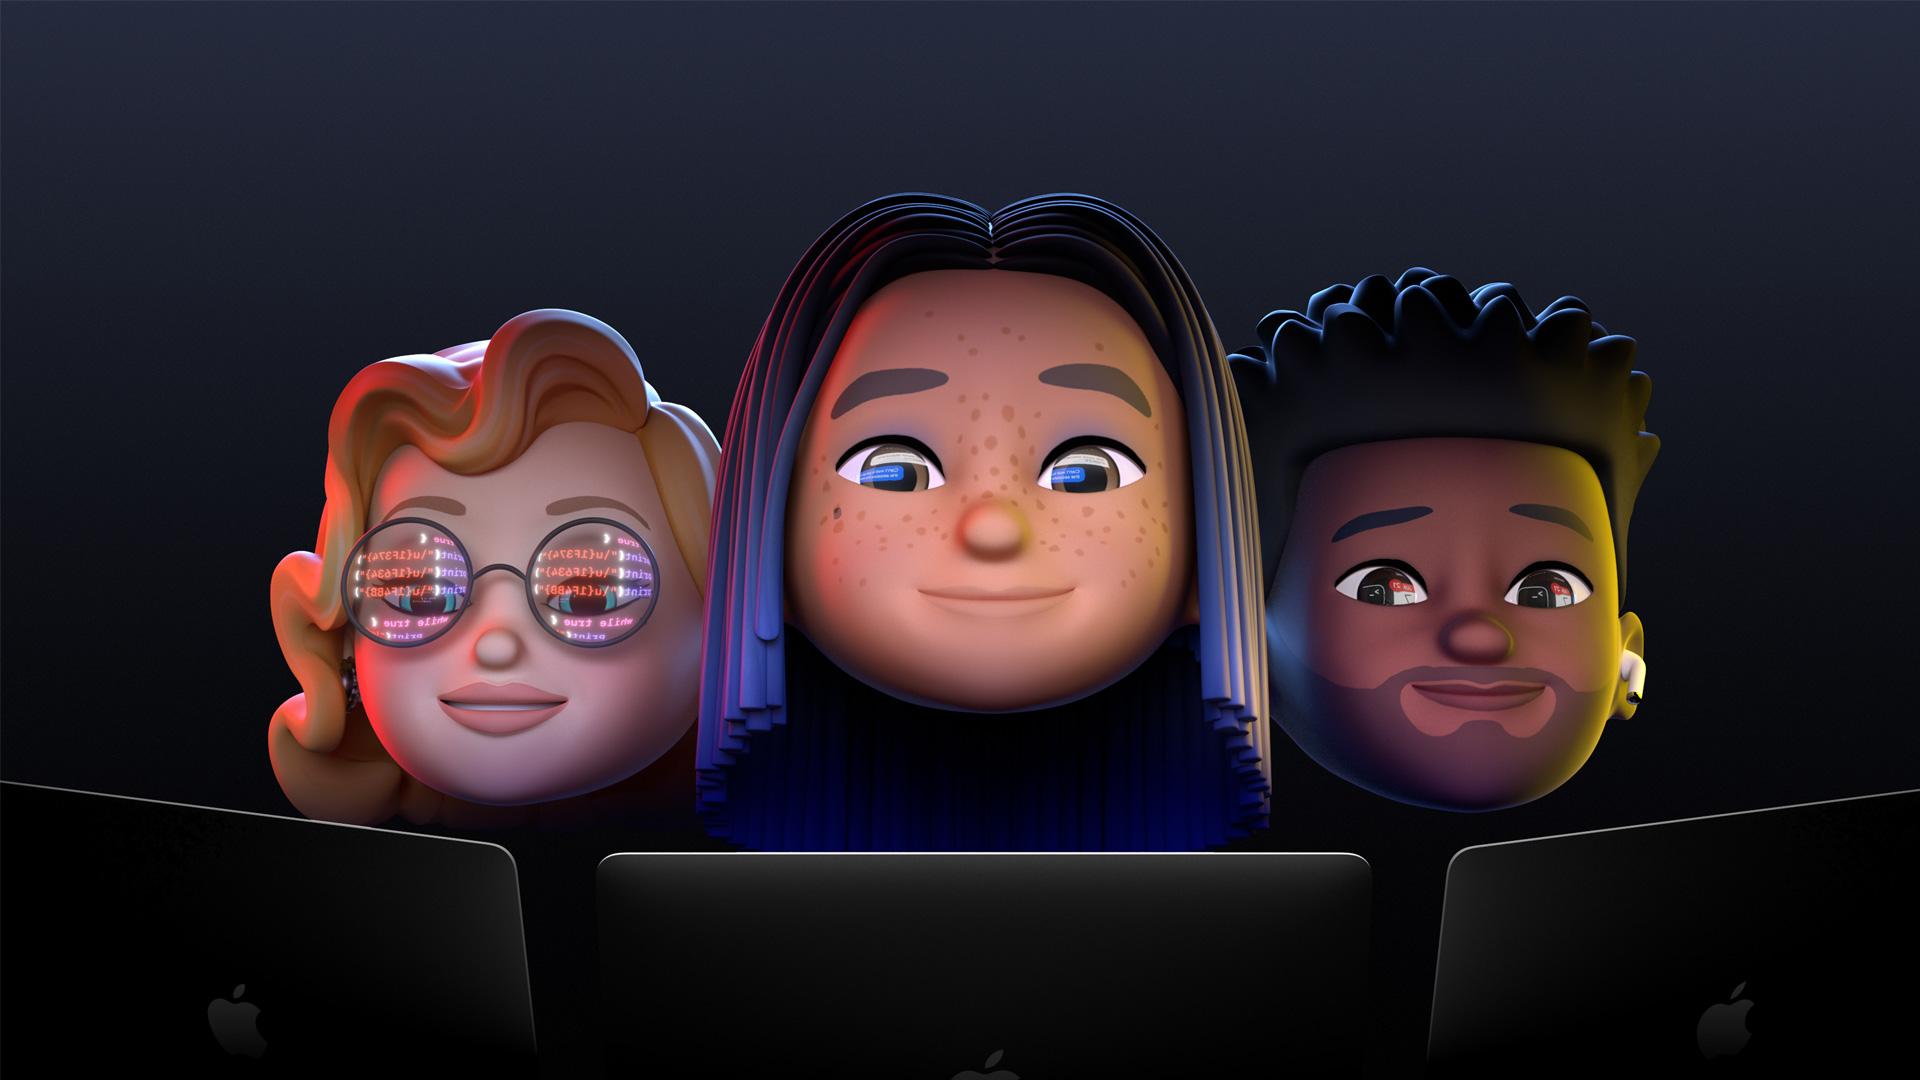 The Apple WWDC 2021 banner.